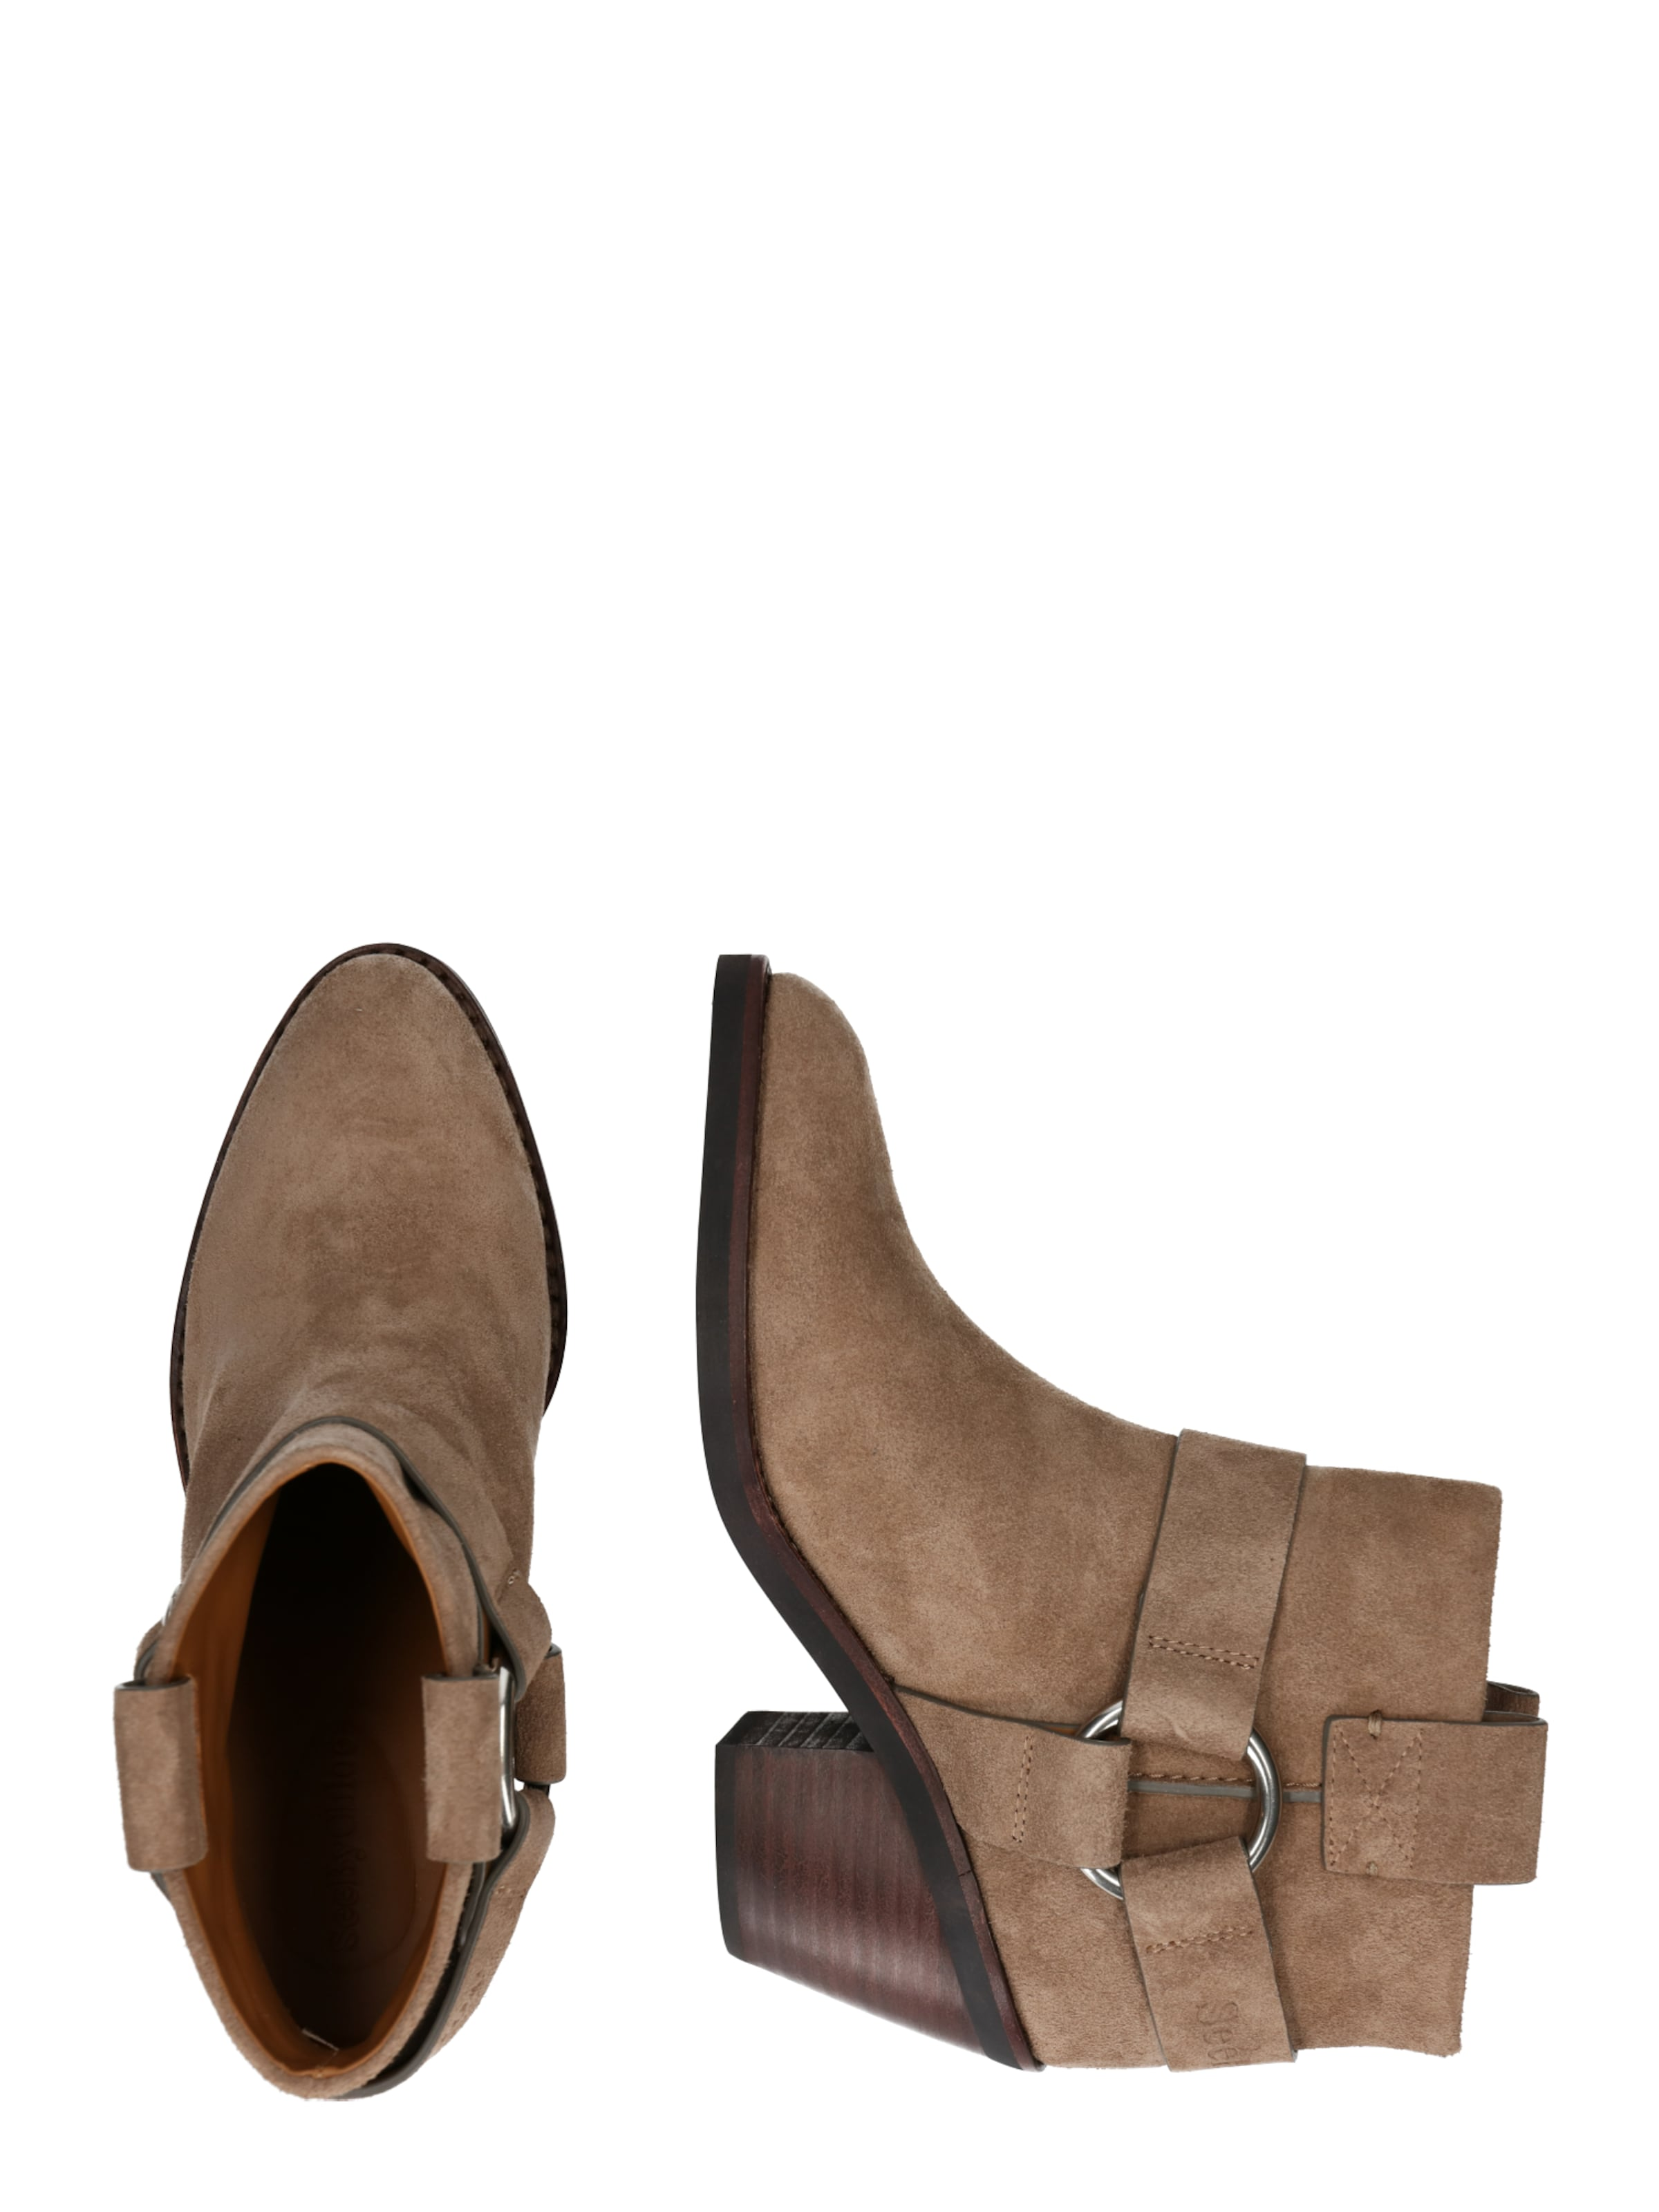 'sb33025a' In Taupe By See Stiefelette Chloé dreWoxBQC